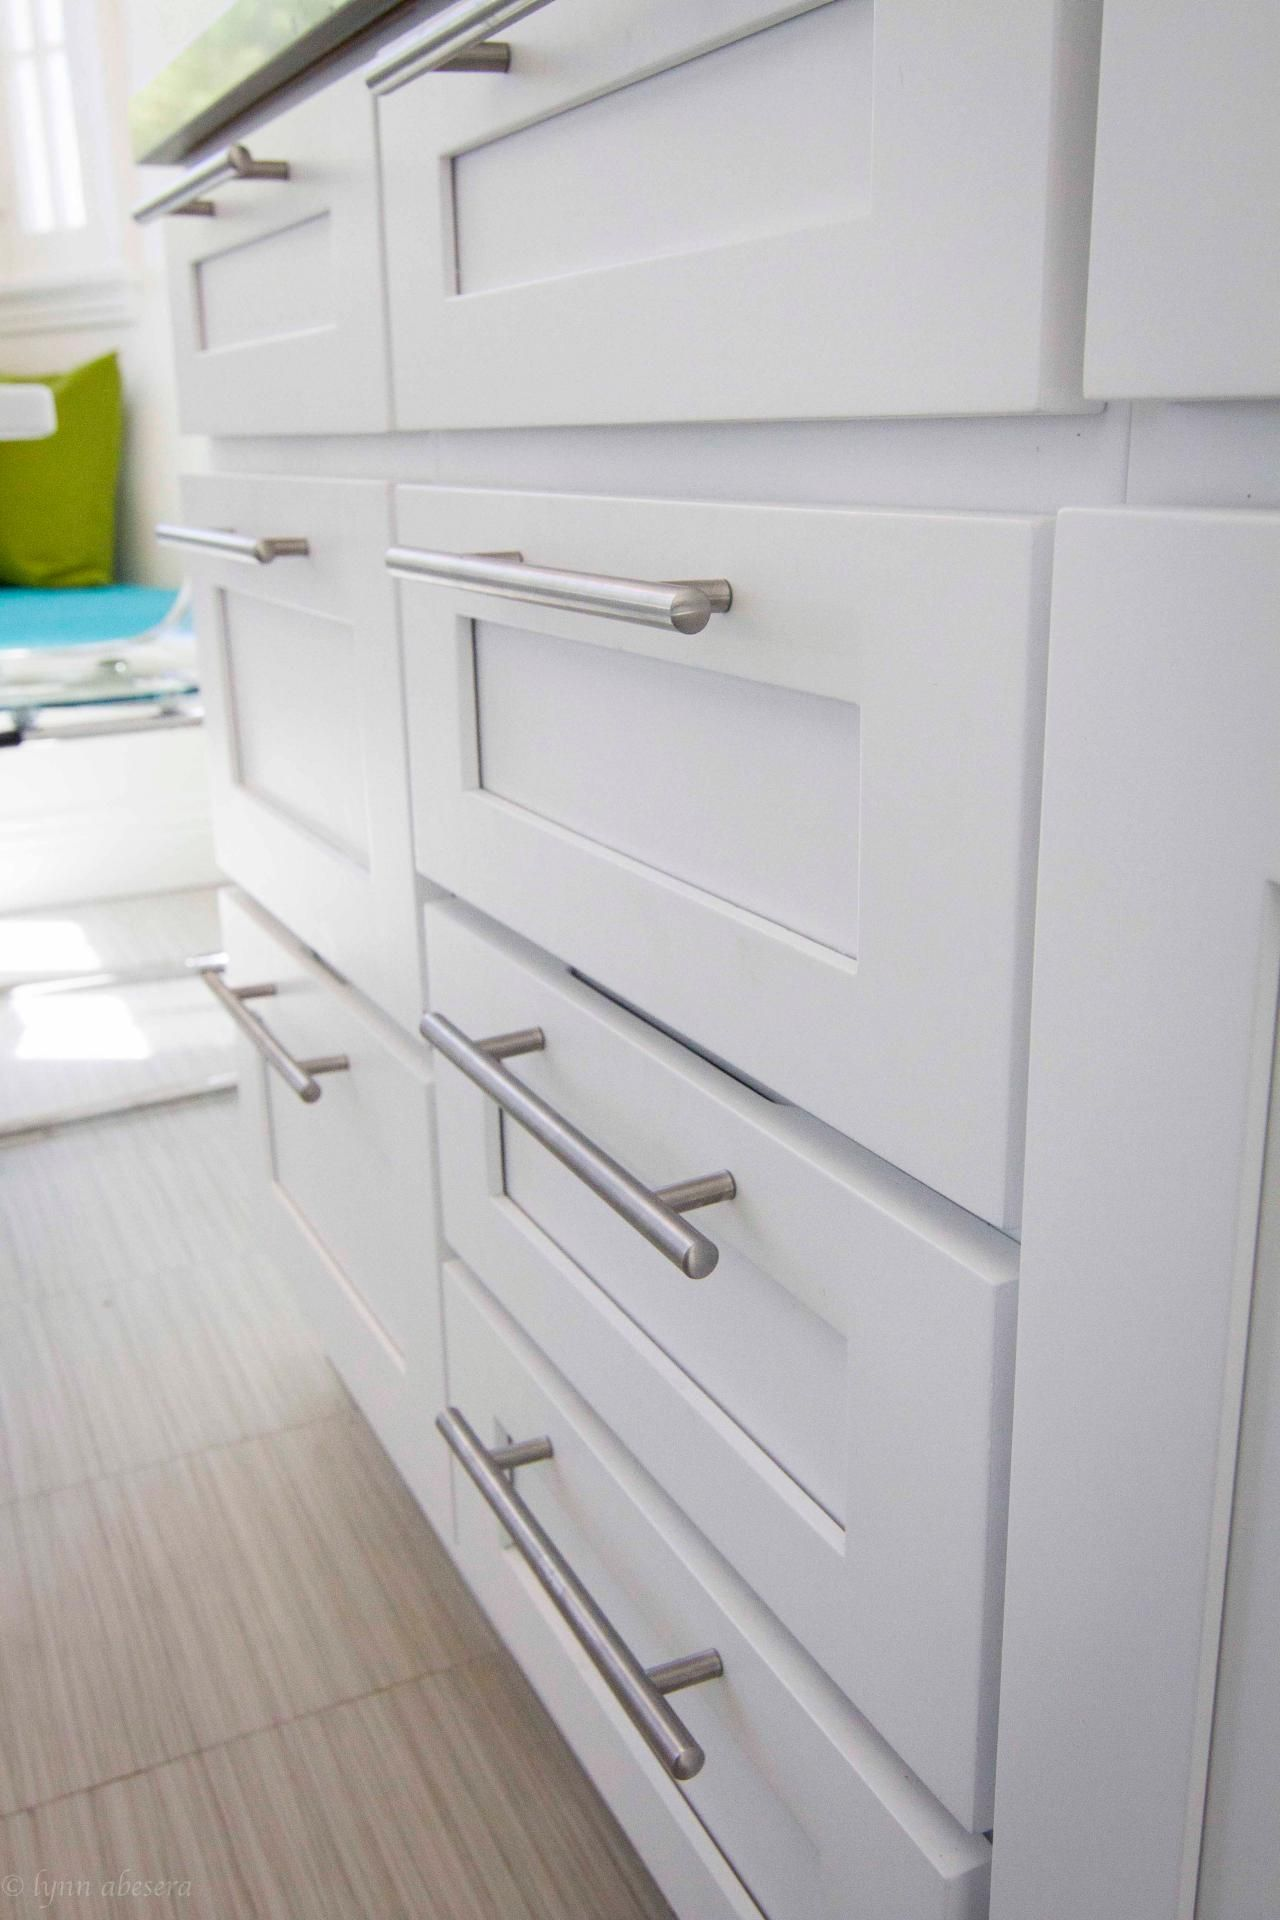 Kitchen Drawer Hardware Retro Set Contemporary Nickel Pulls In White Cabinetry